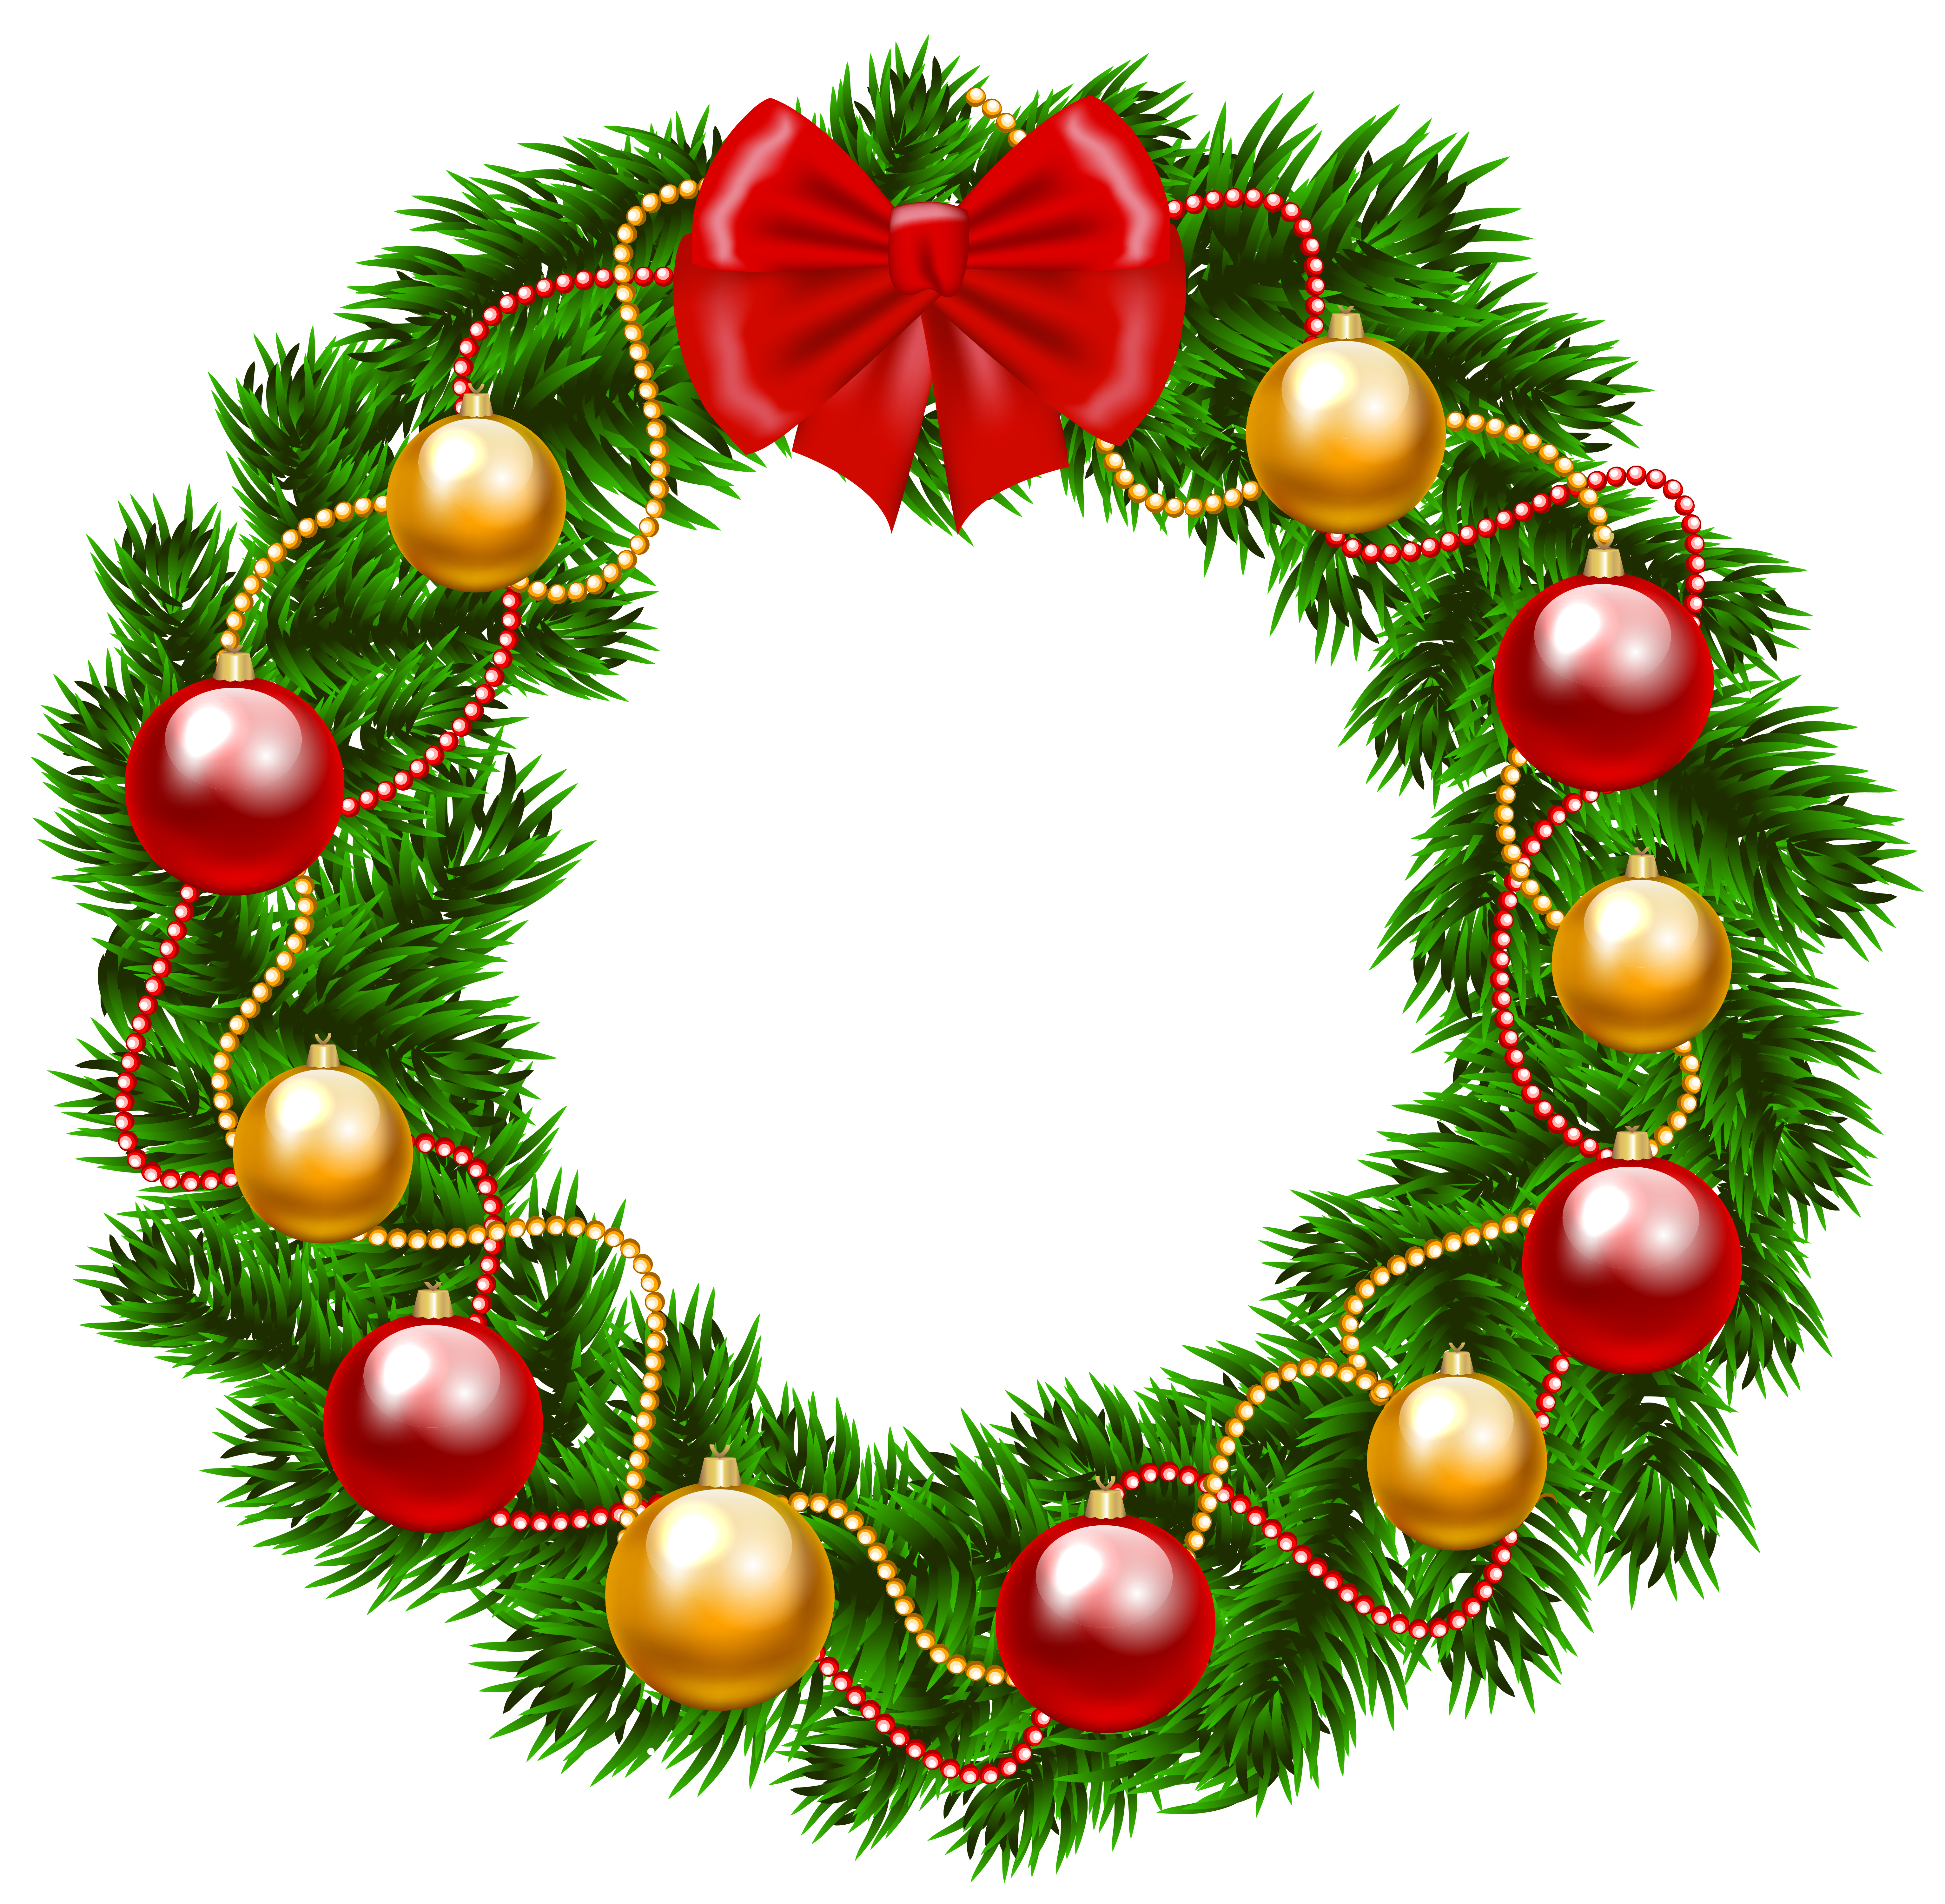 Christmas Wreath PNG Clipart Image.